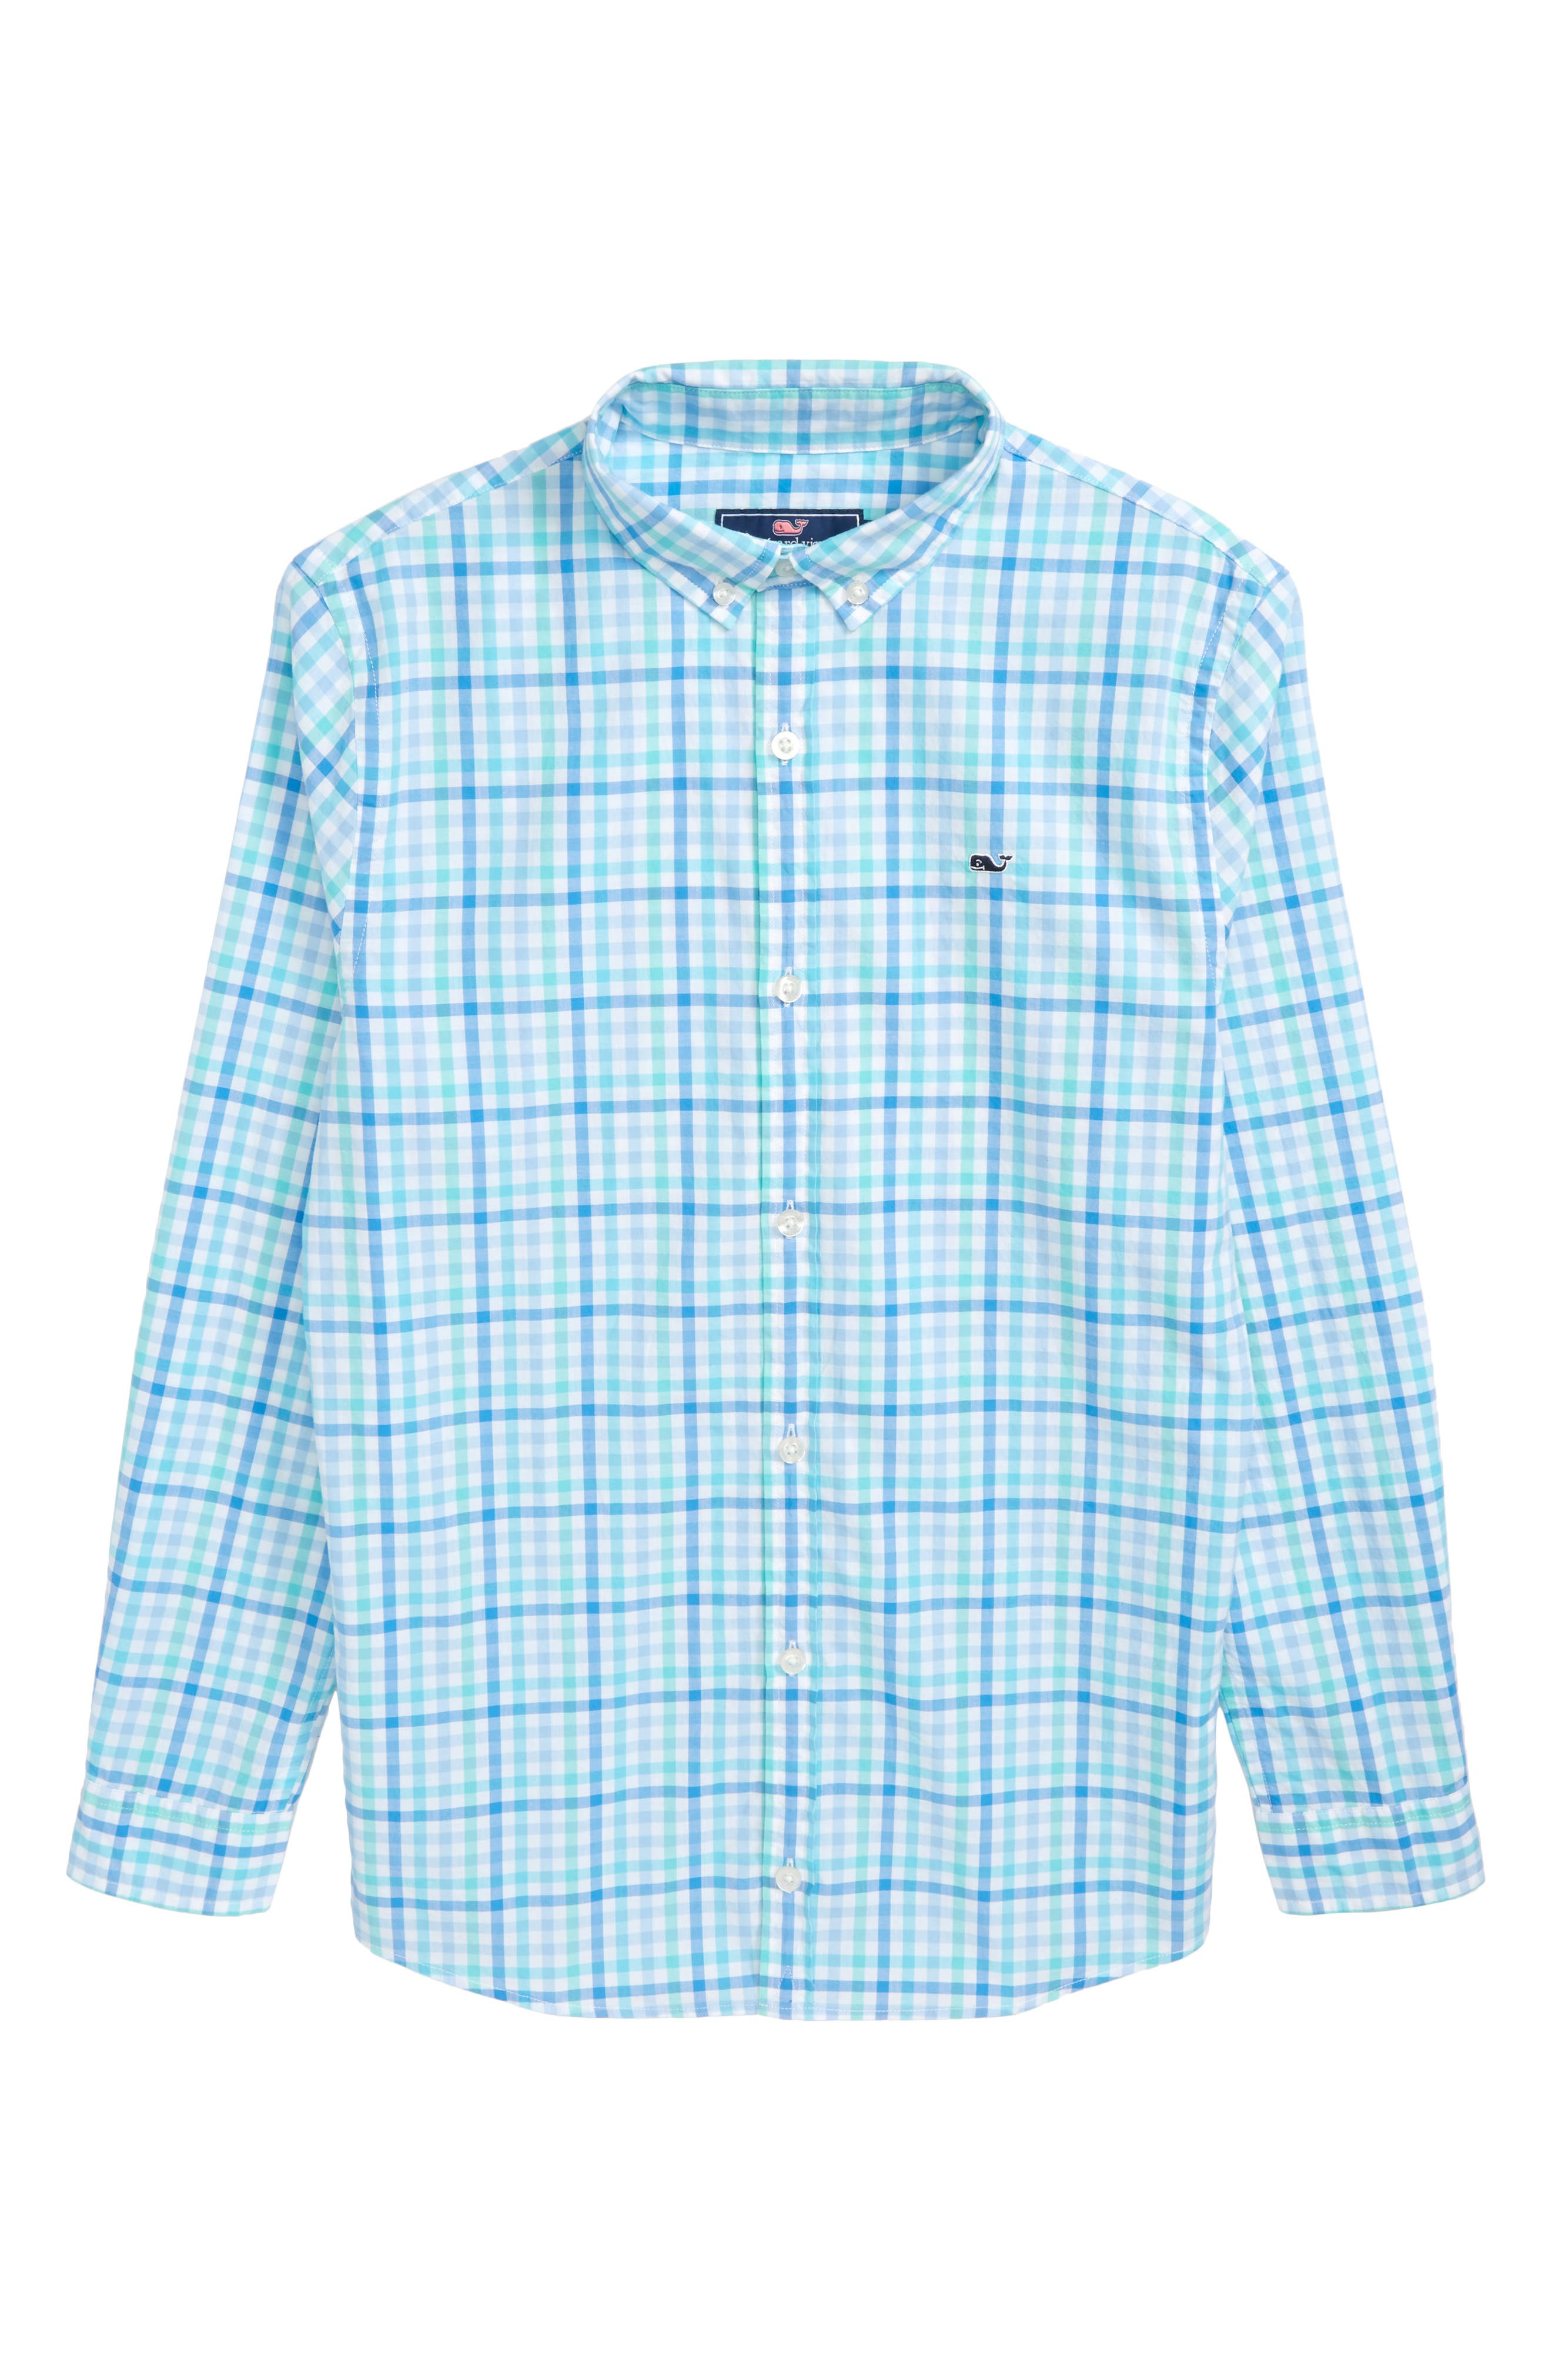 Guana Cay Gingham Check Woven Shirt,                         Main,                         color,